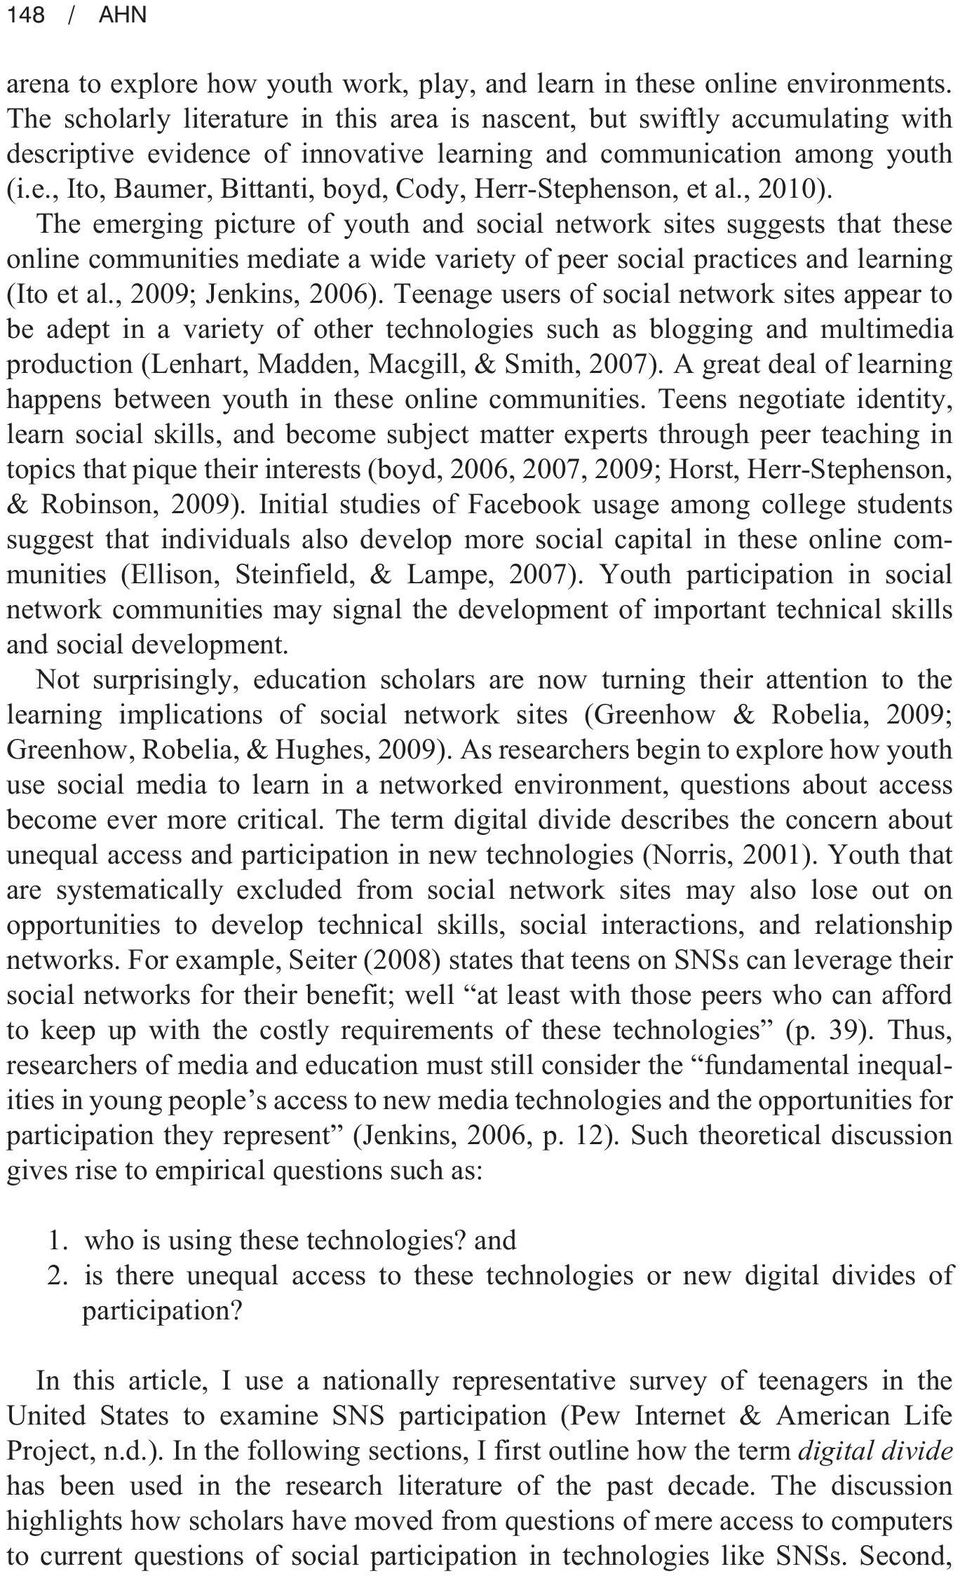 , 2010). The emerging picture of youth and social network sites suggests that these online communities mediate a wide variety of peer social practices and learning (Ito et al., 2009; Jenkins, 2006).